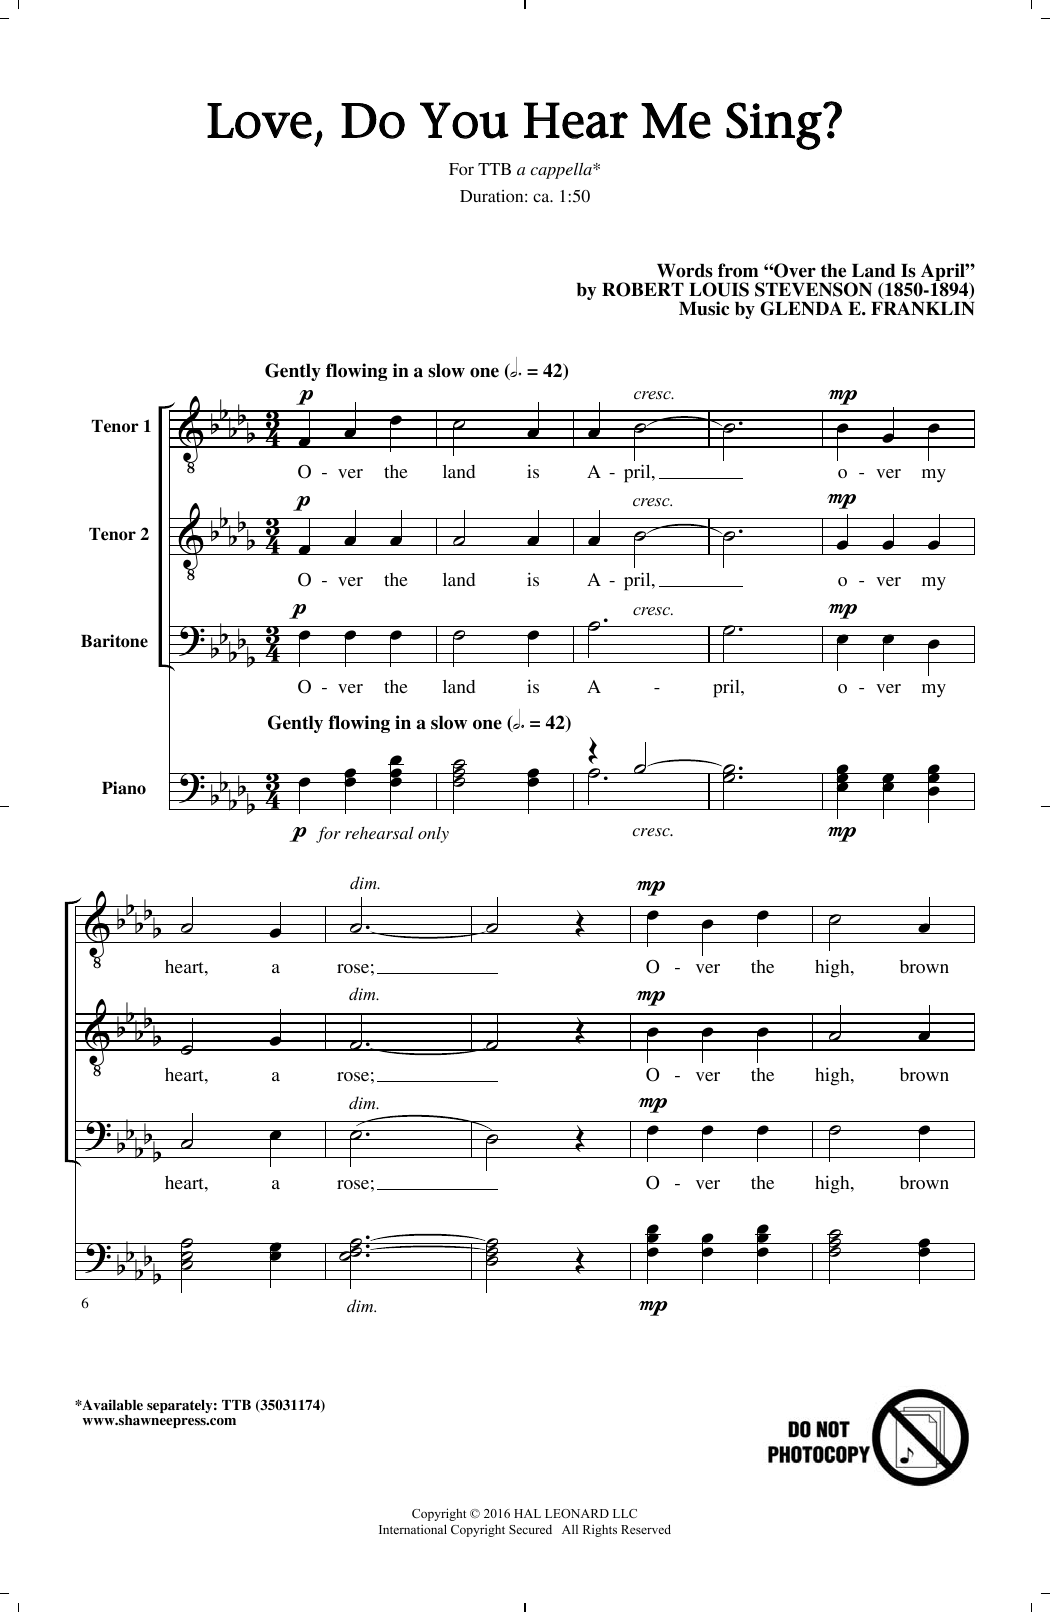 Love, Do You Hear Me Sing? Sheet Music